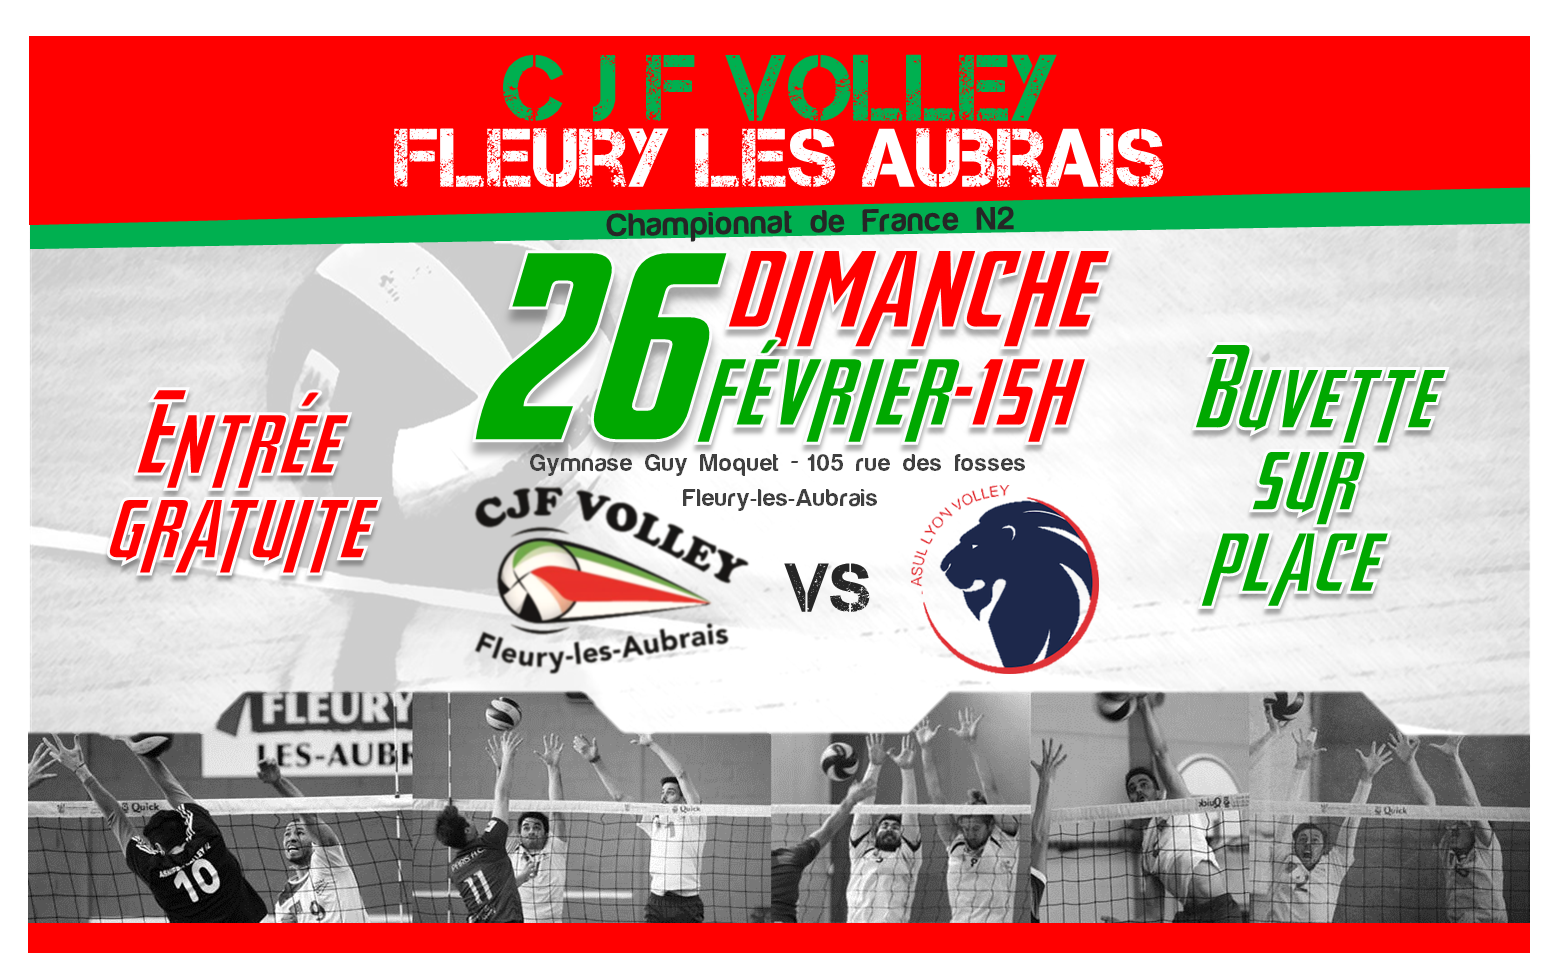 Prochain Match à Domicile :<br>CJF VOLLEY VS ASUL LYON VOLLEY BALL